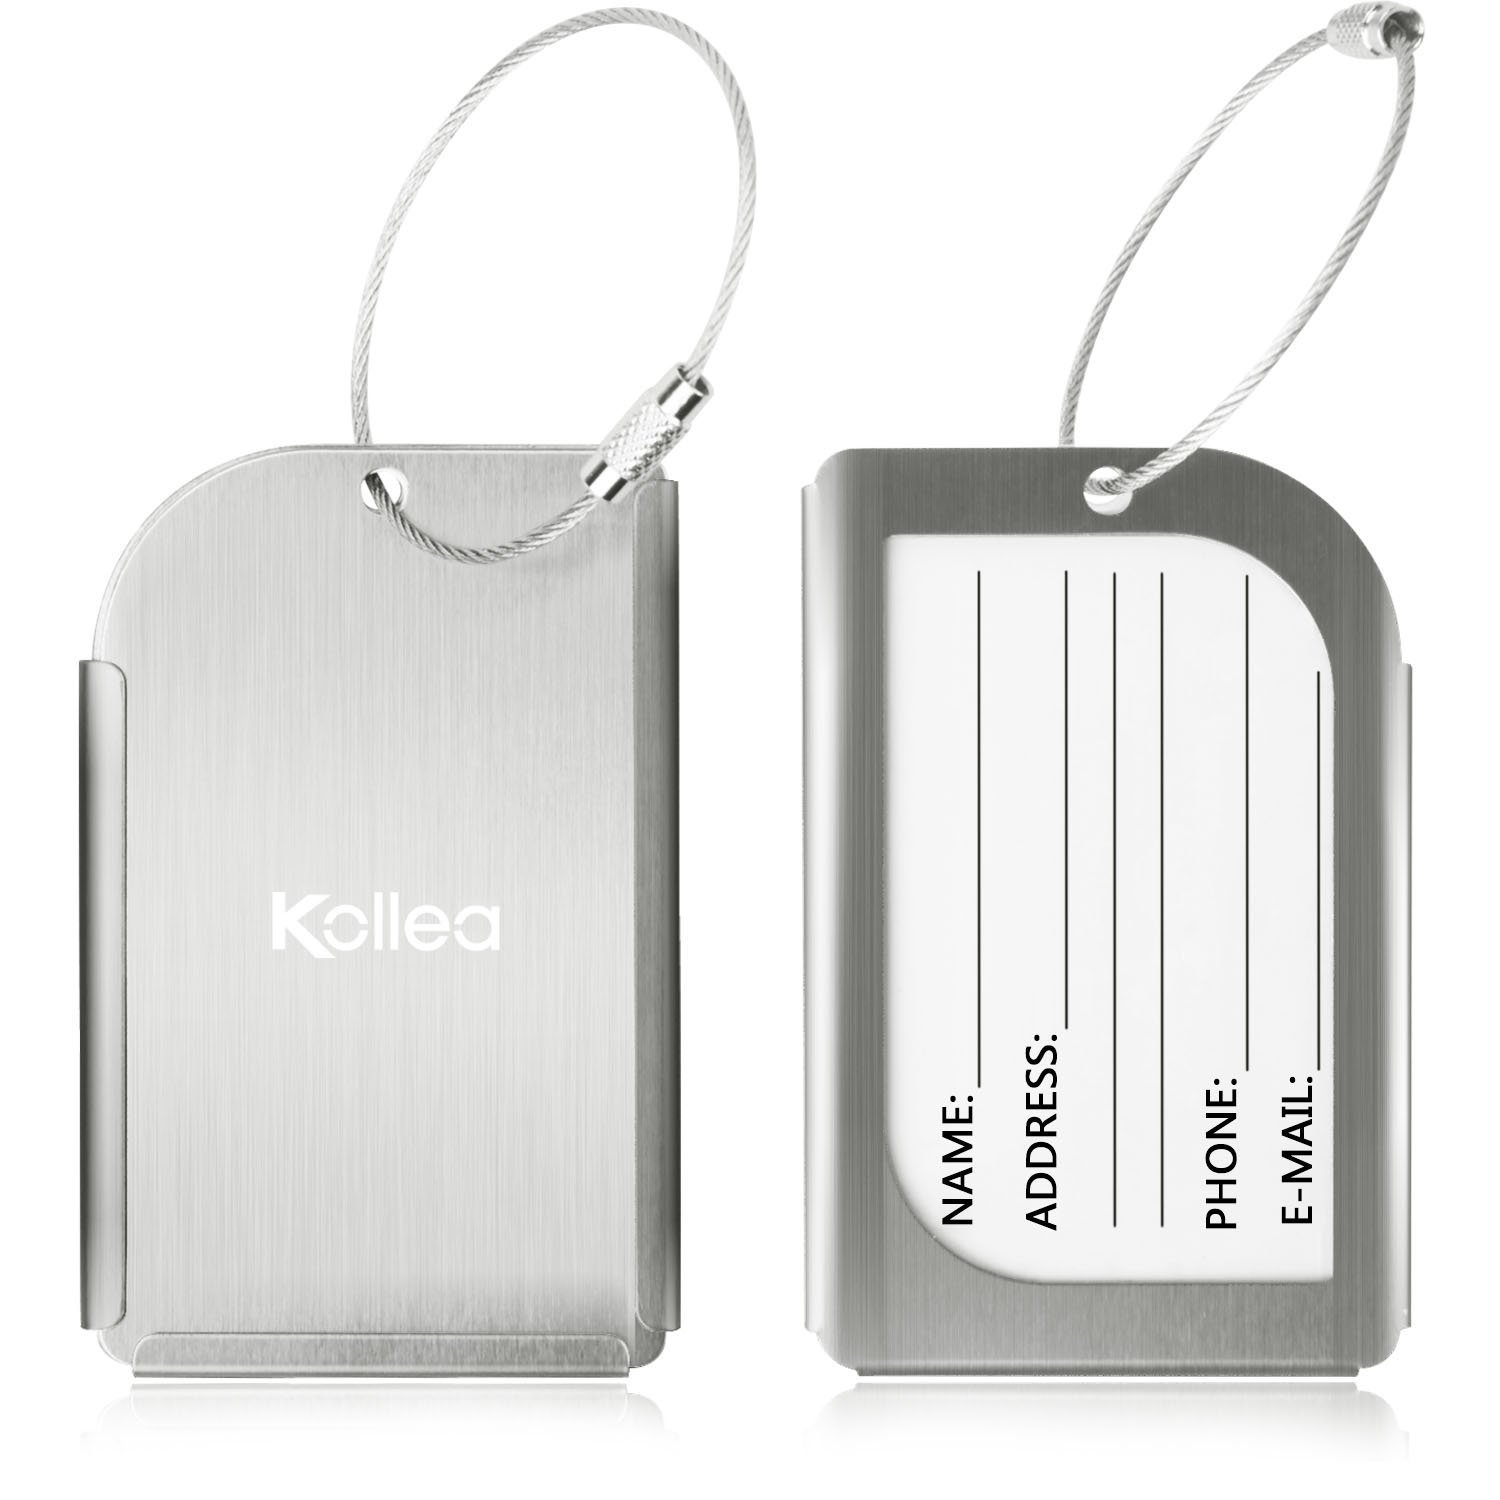 Luggage tags amazon luggage tags kollea pack of 2 aluminum travel id tag business card holder suitcase label magicingreecefo Choice Image